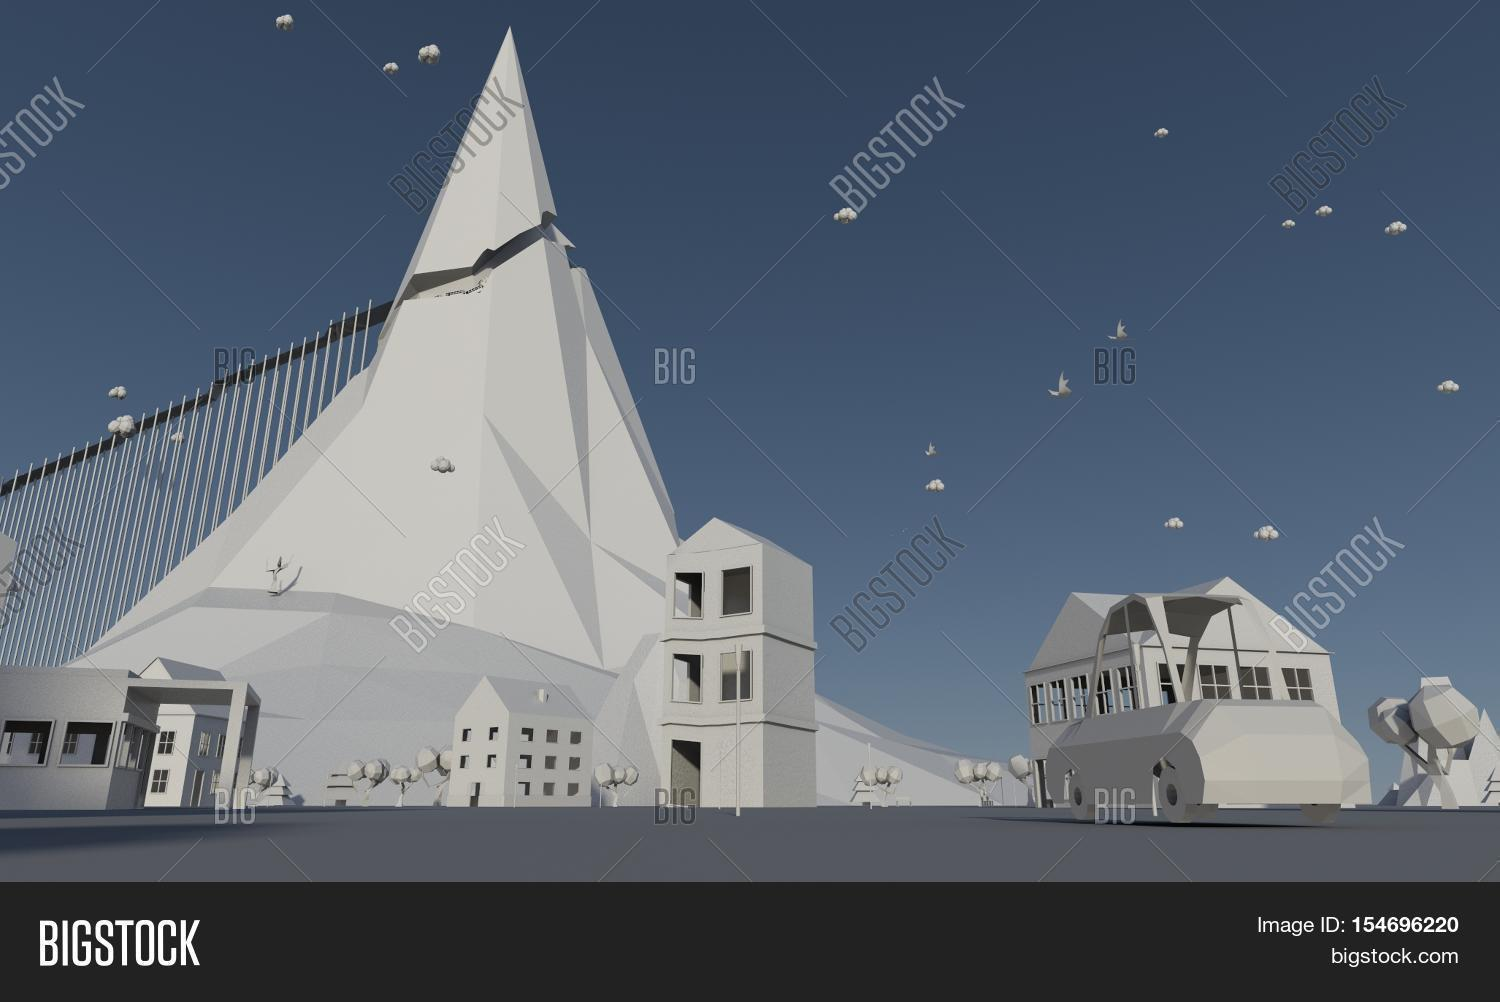 Low Poly City 3D, Image & Photo (Free Trial) | Bigstock